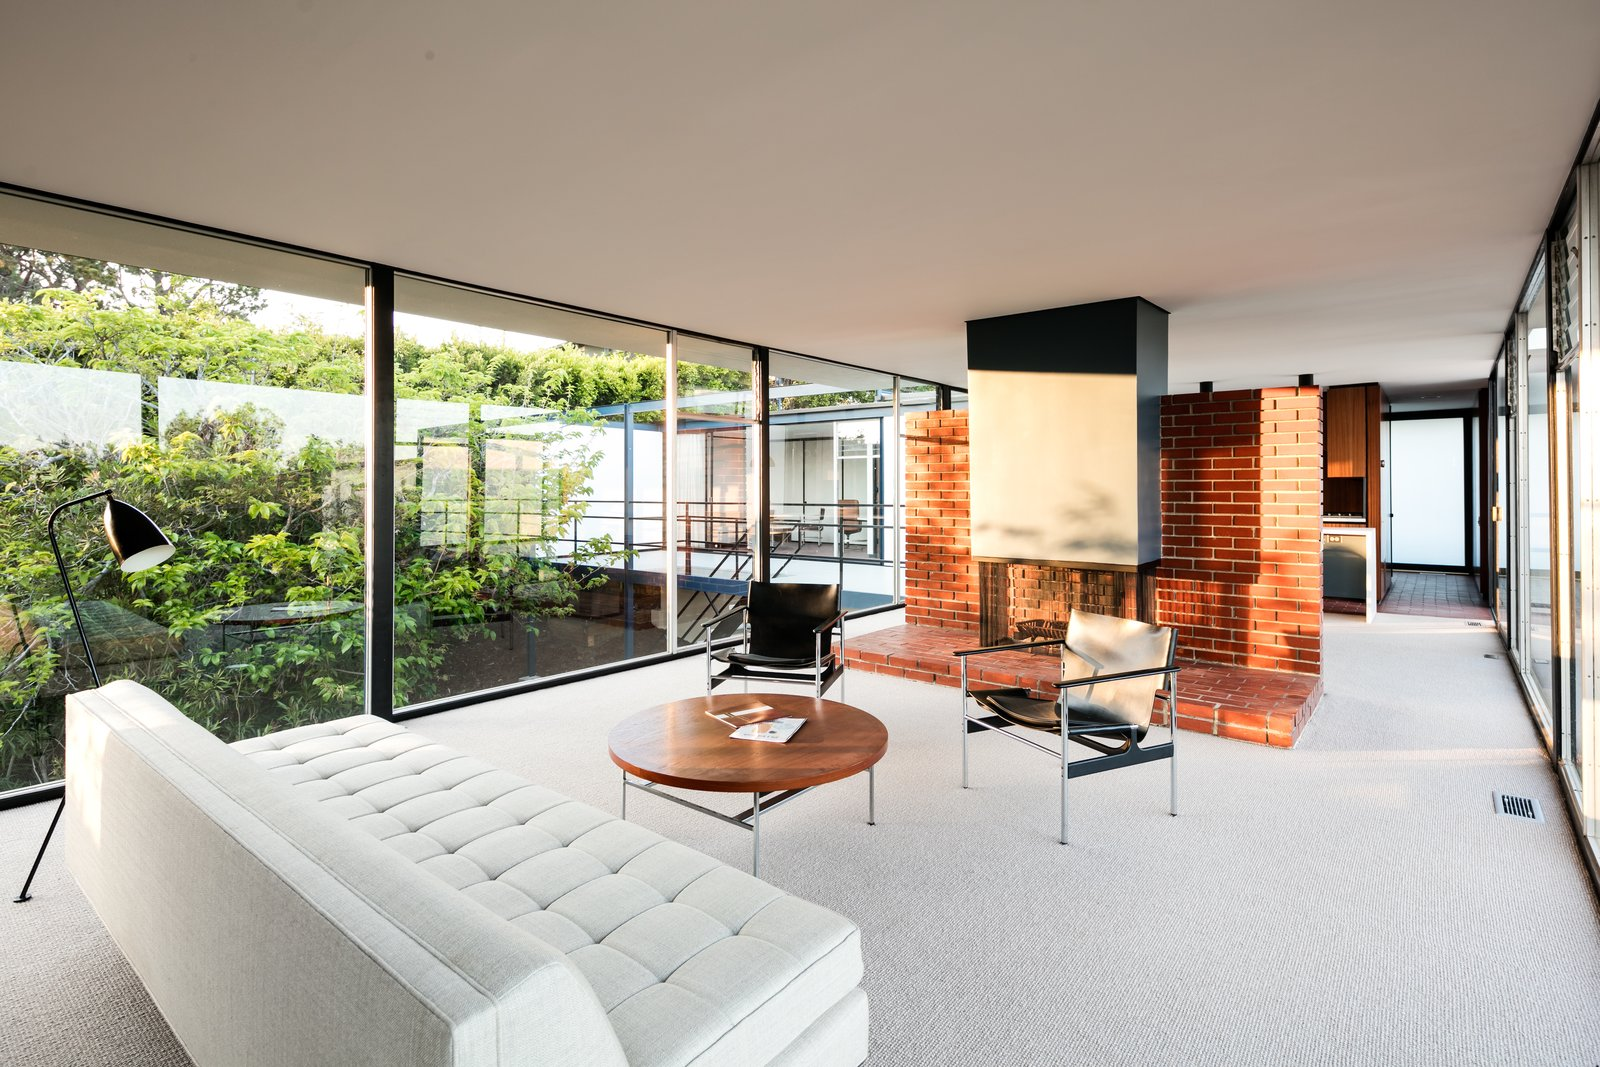 A look at the open living plan. Note the fireplace is set in the center of the space against a brick dividing wall.